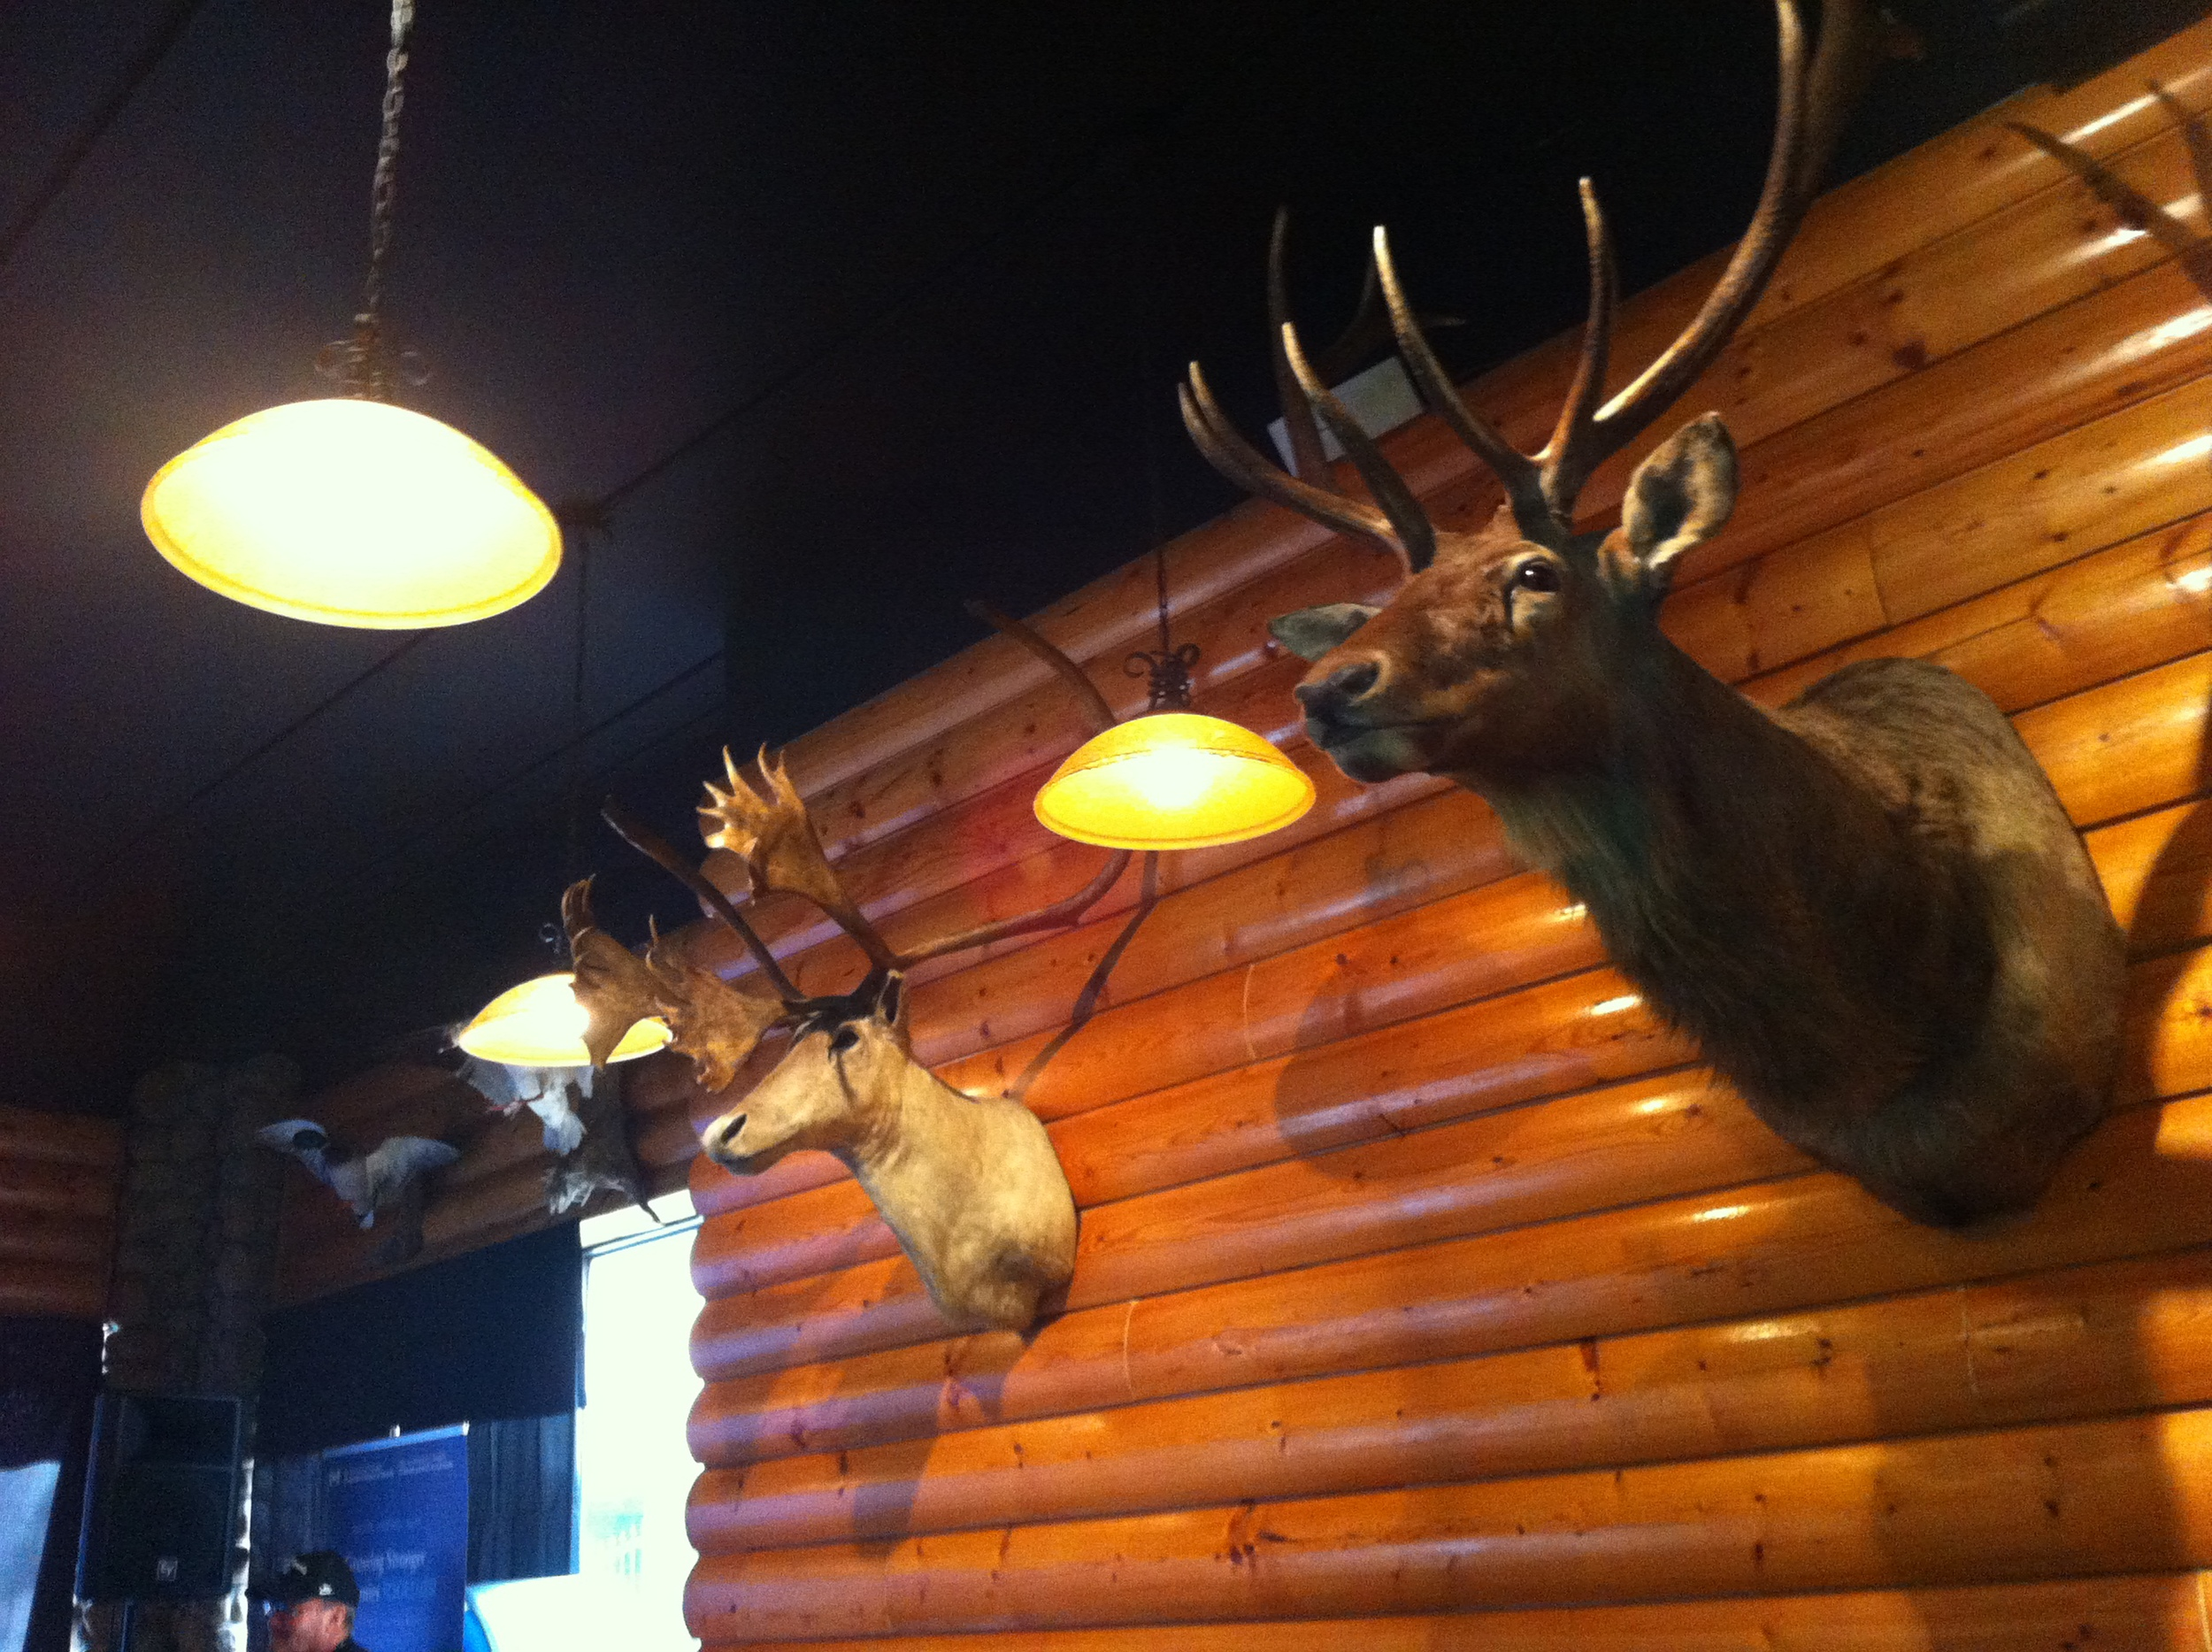 The feature wall of mounted animal heads is impressive.